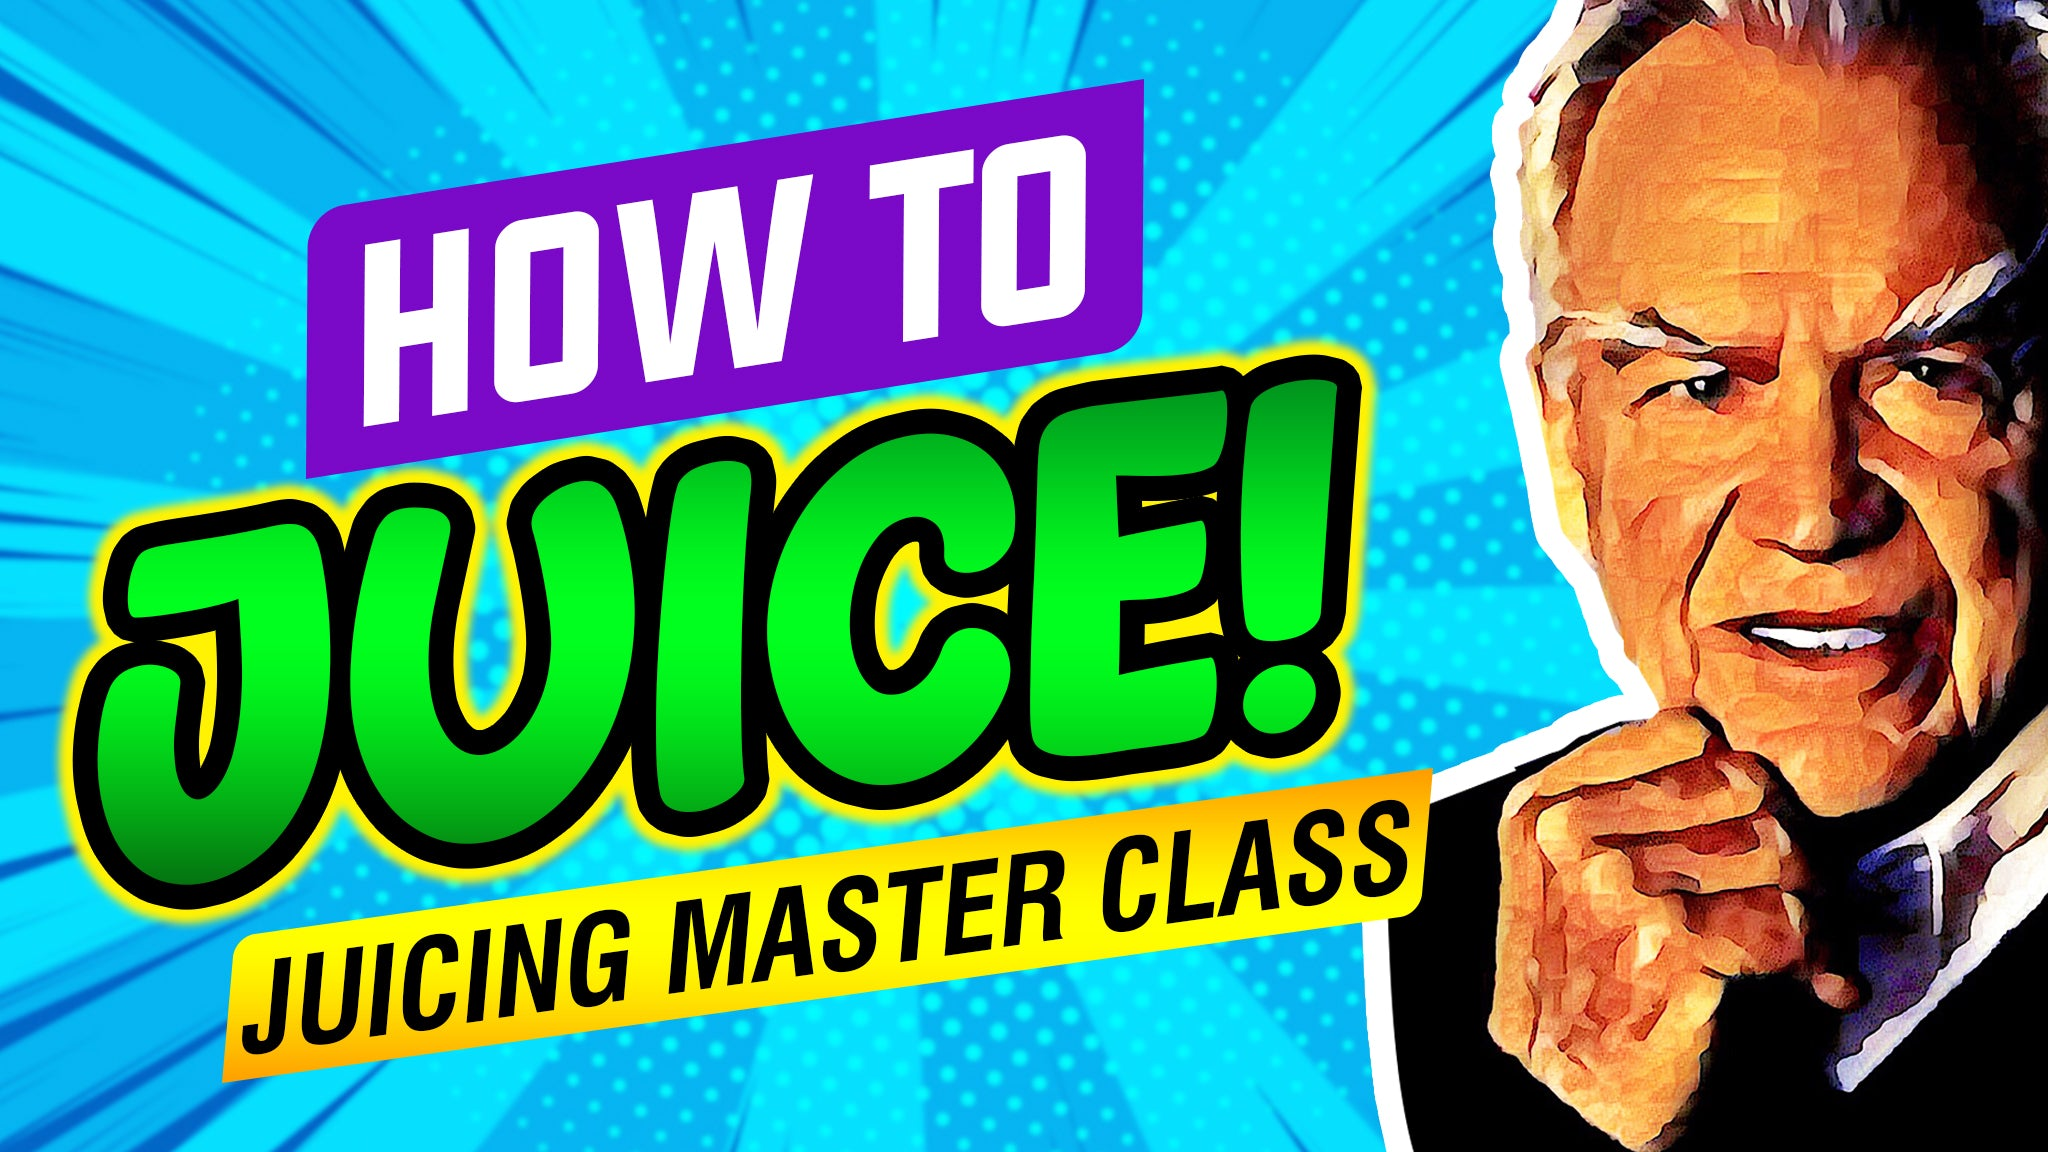 The Juicing Master Class - Lowest price this month!  Valued at $1,000.00